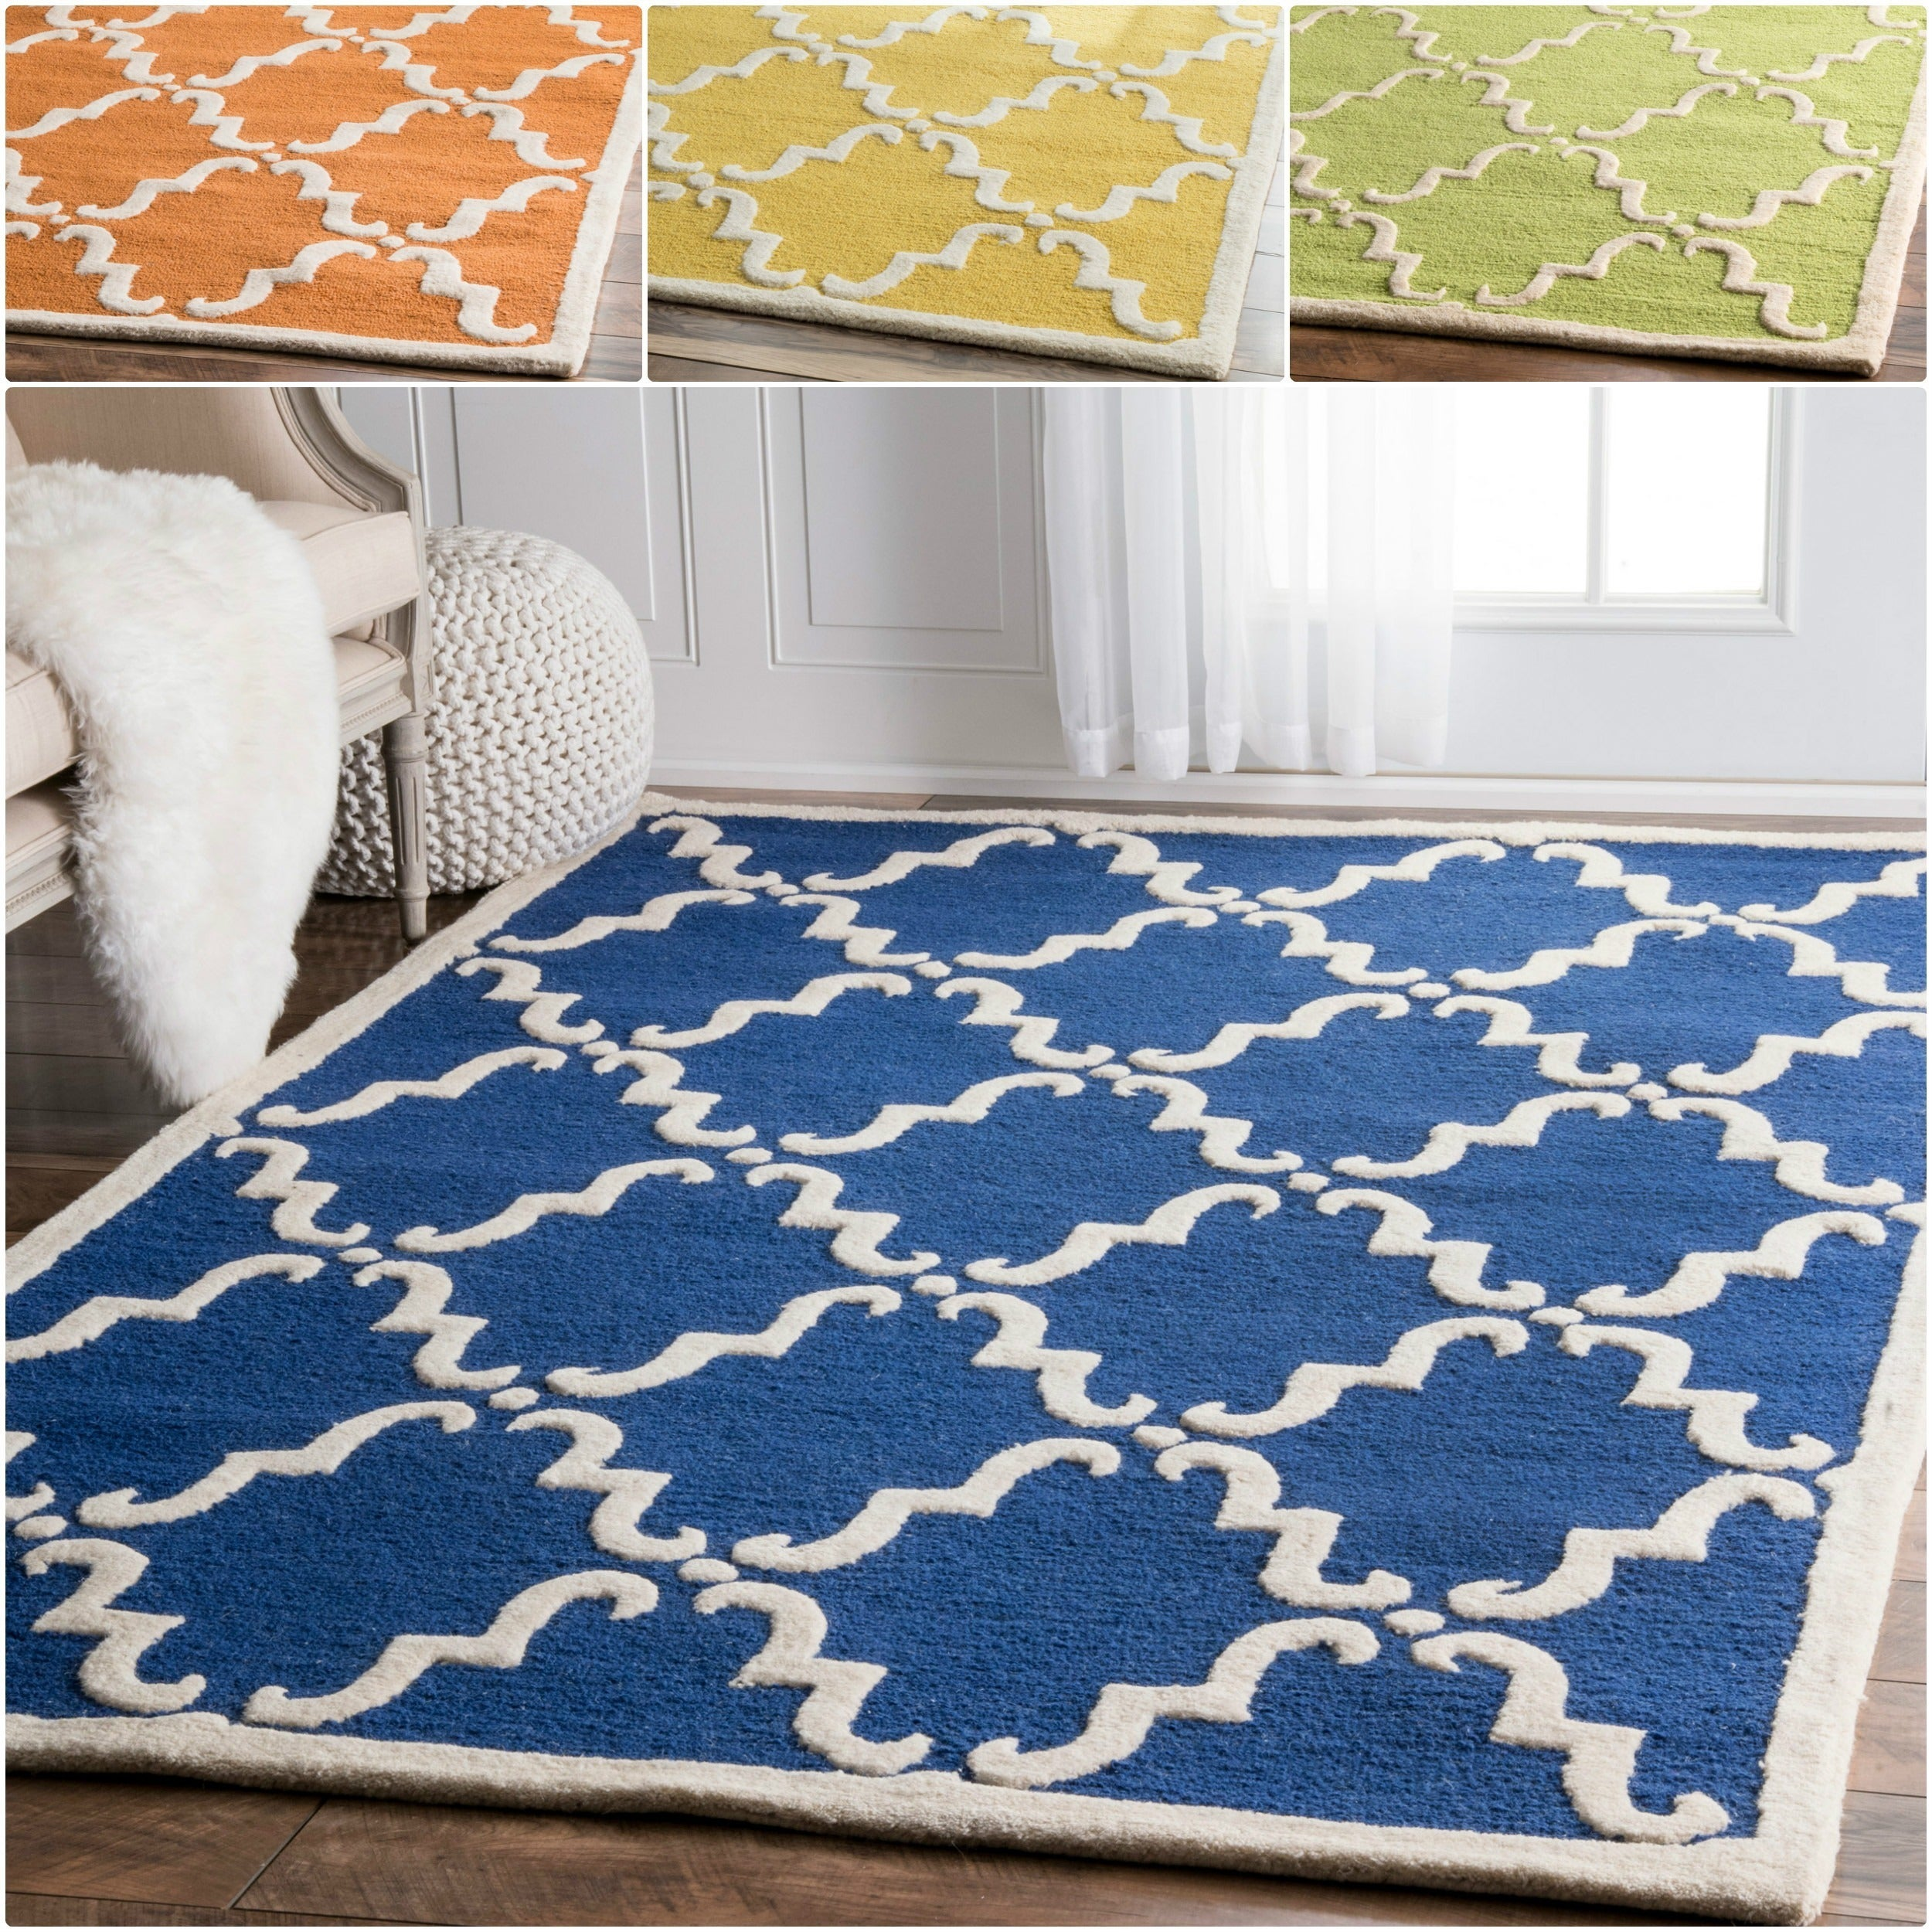 a4818e8ac9f Shop nuLOOM Handmade Luna Marrakesh Trellis Wool Rug (5  x 8 ) - Free  Shipping On Orders Over  45 - Overstock - 6437411